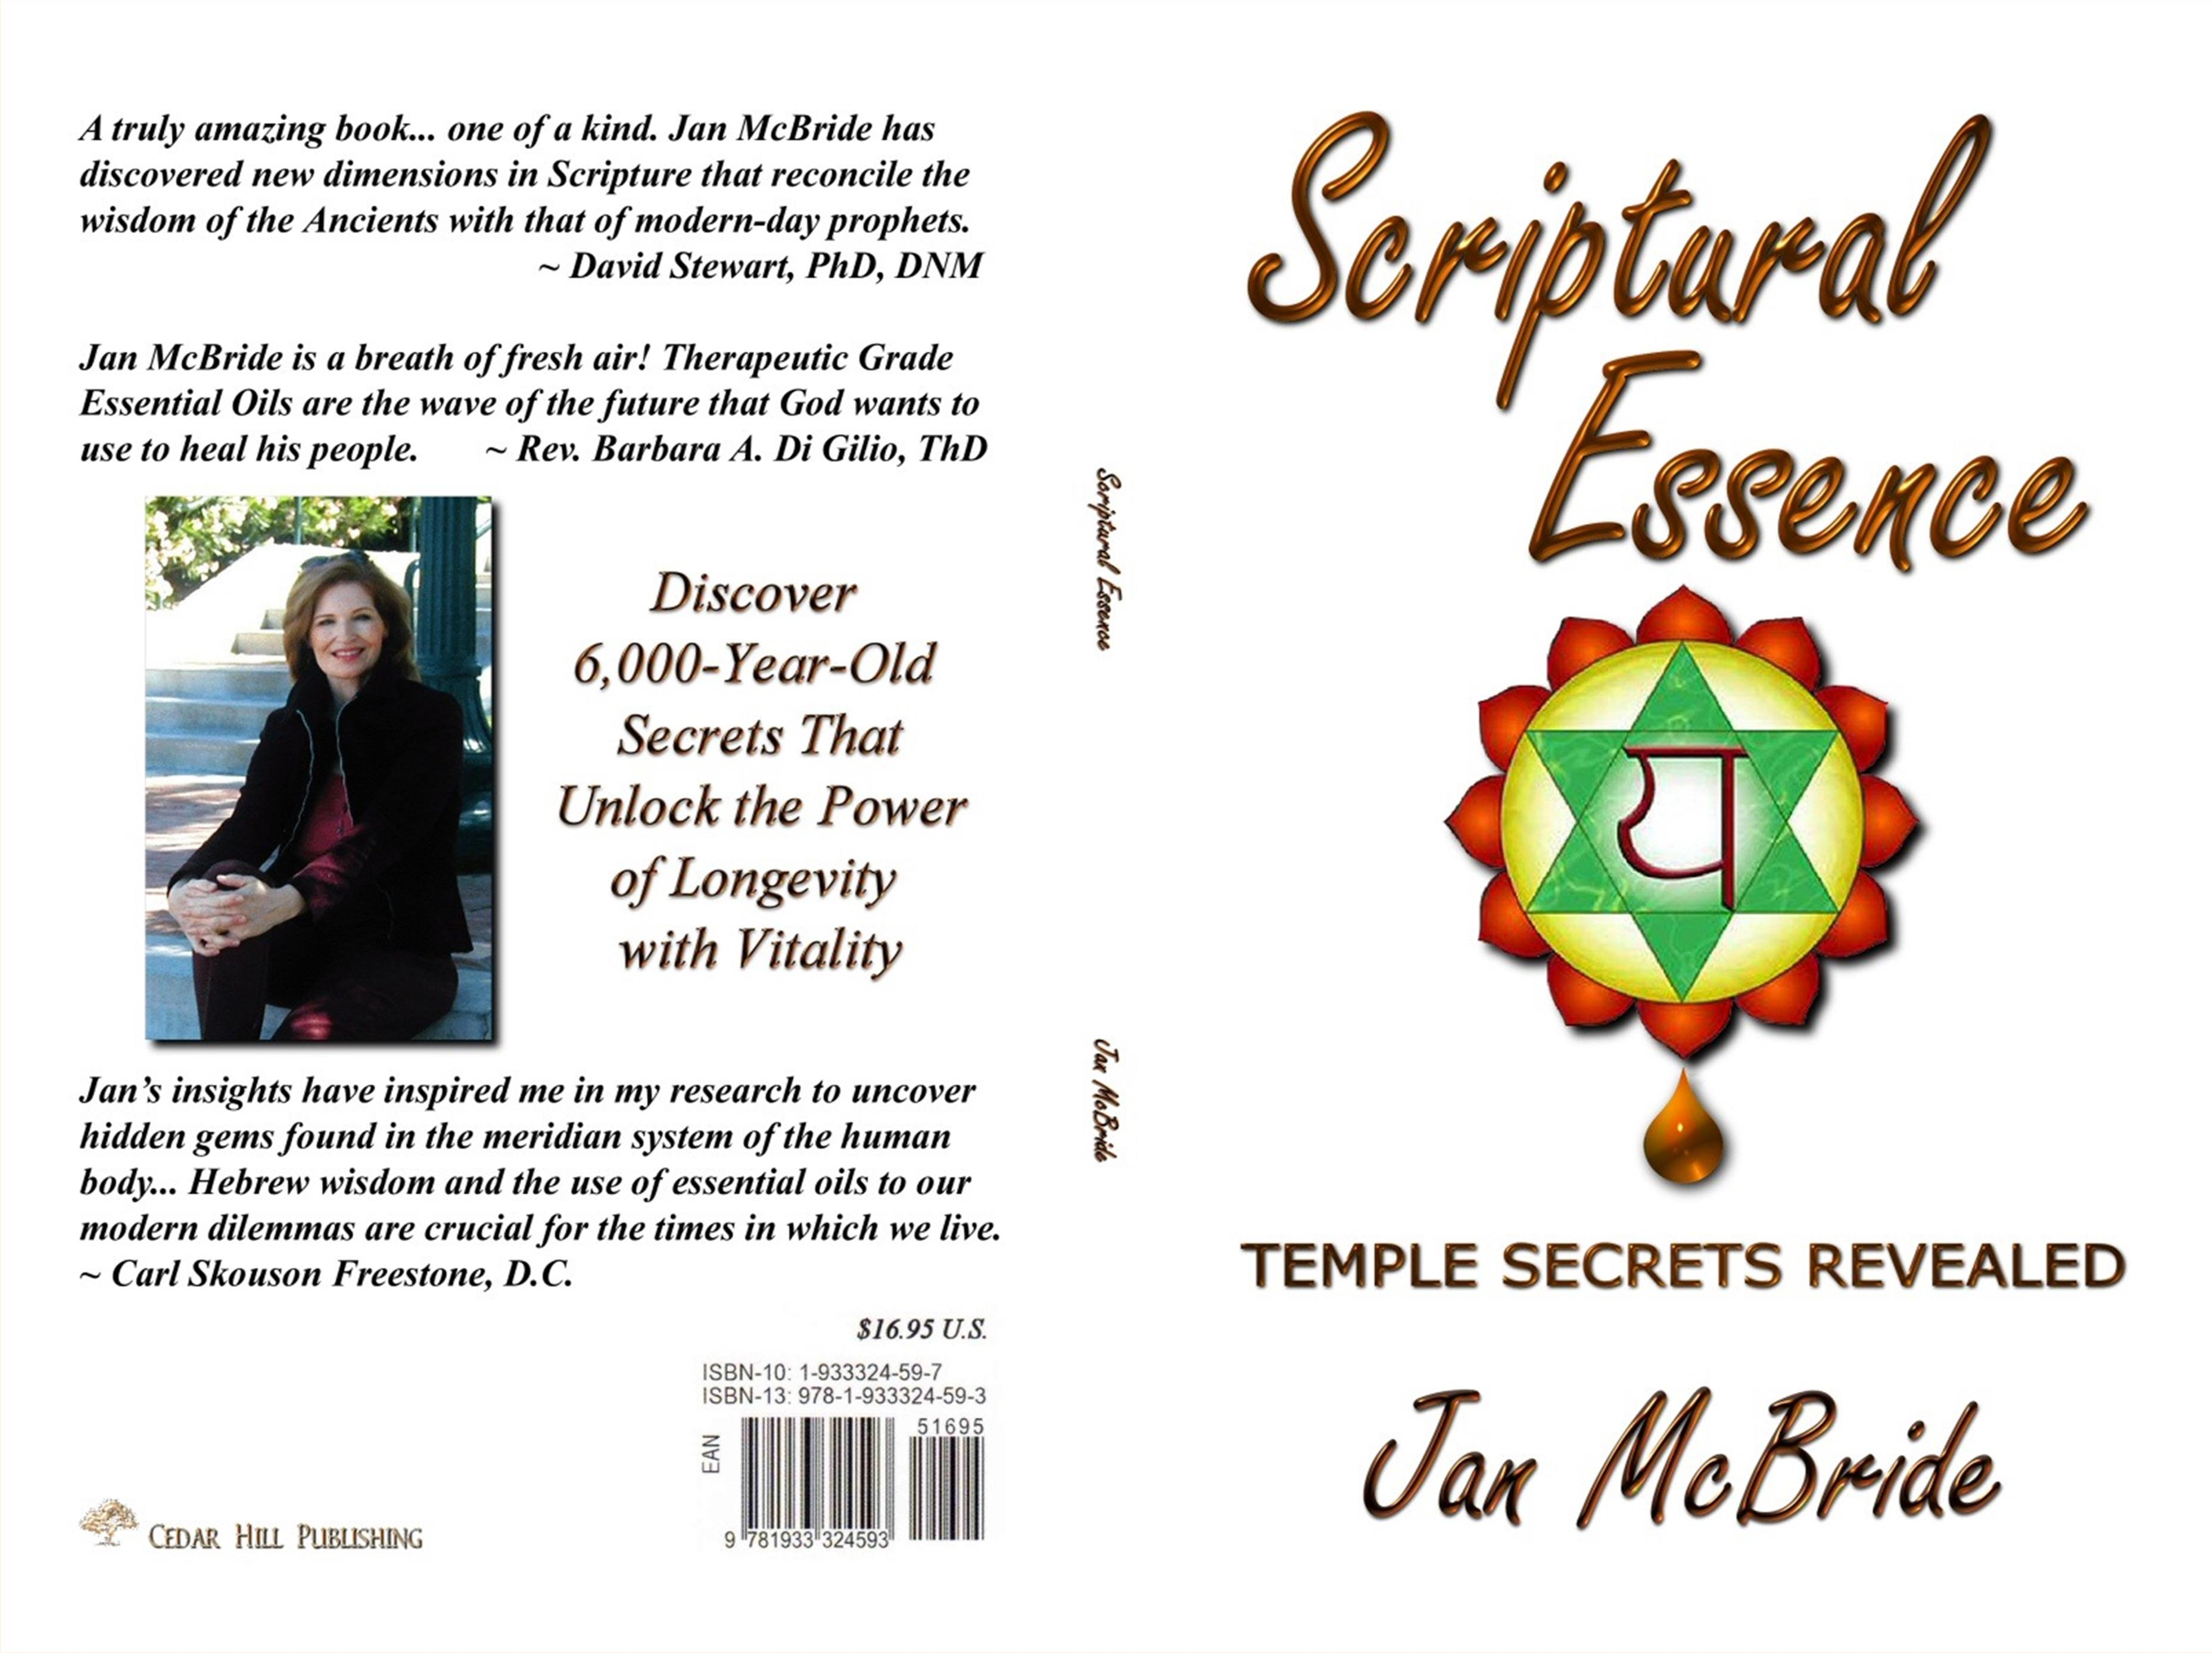 Scriptural Essence--Temple Secrets Revealed cover image